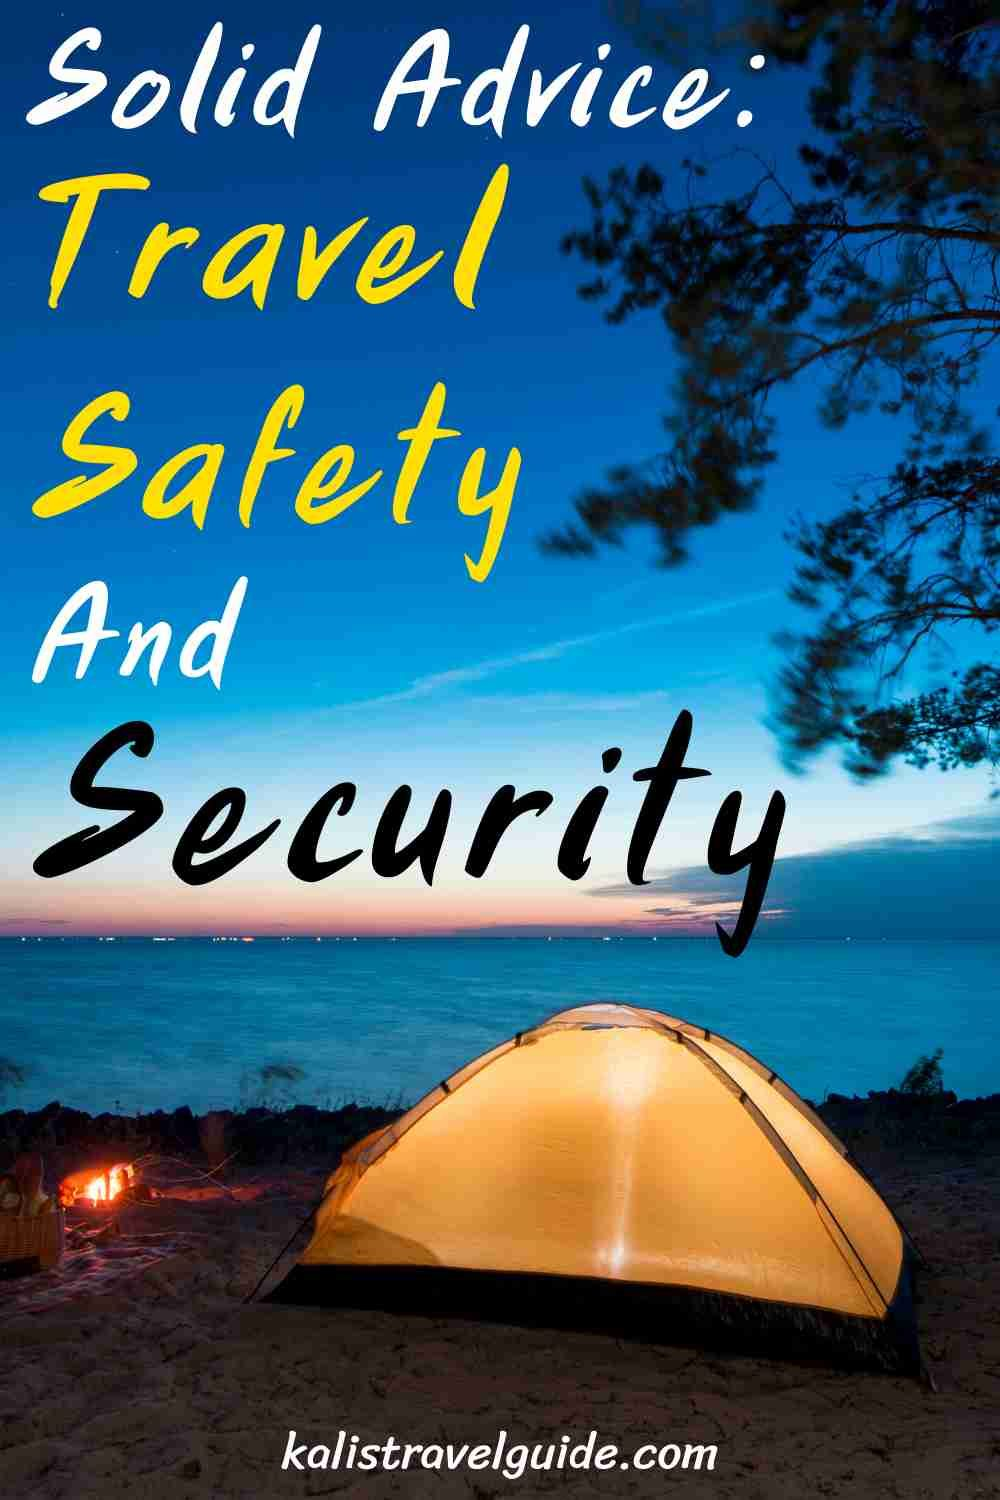 Travel Safety and Security